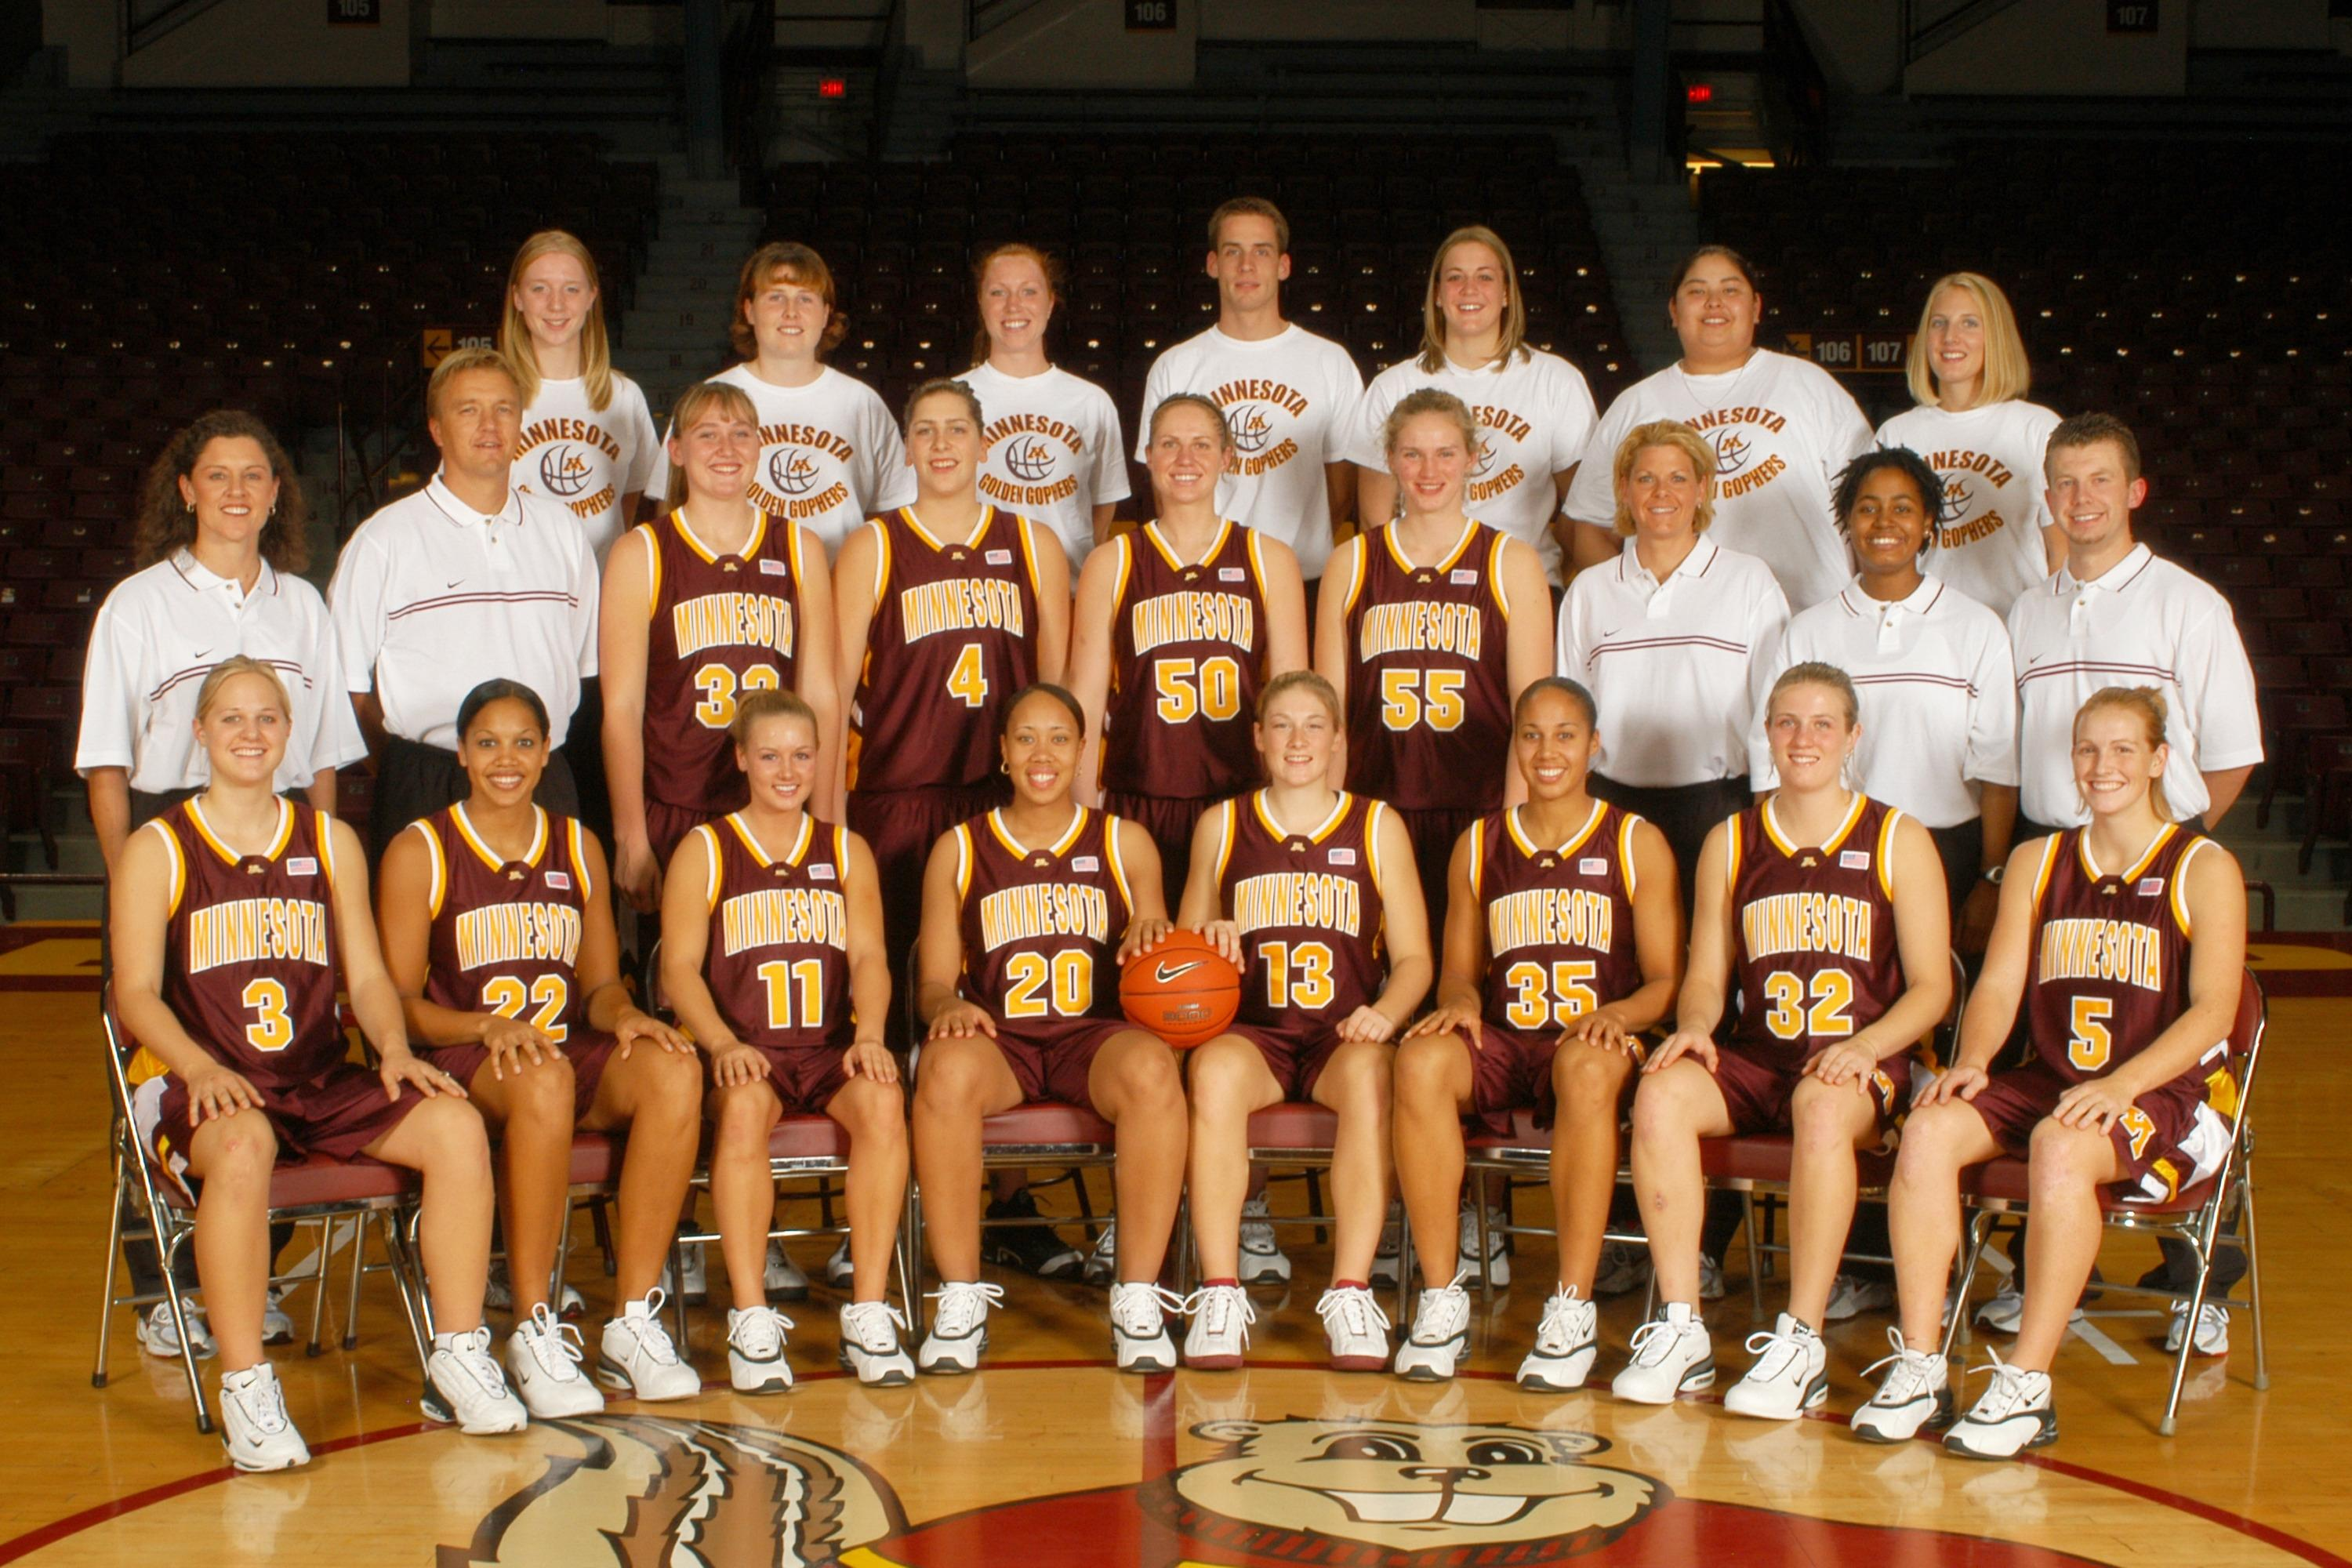 2004 Minnesota women's basketball team